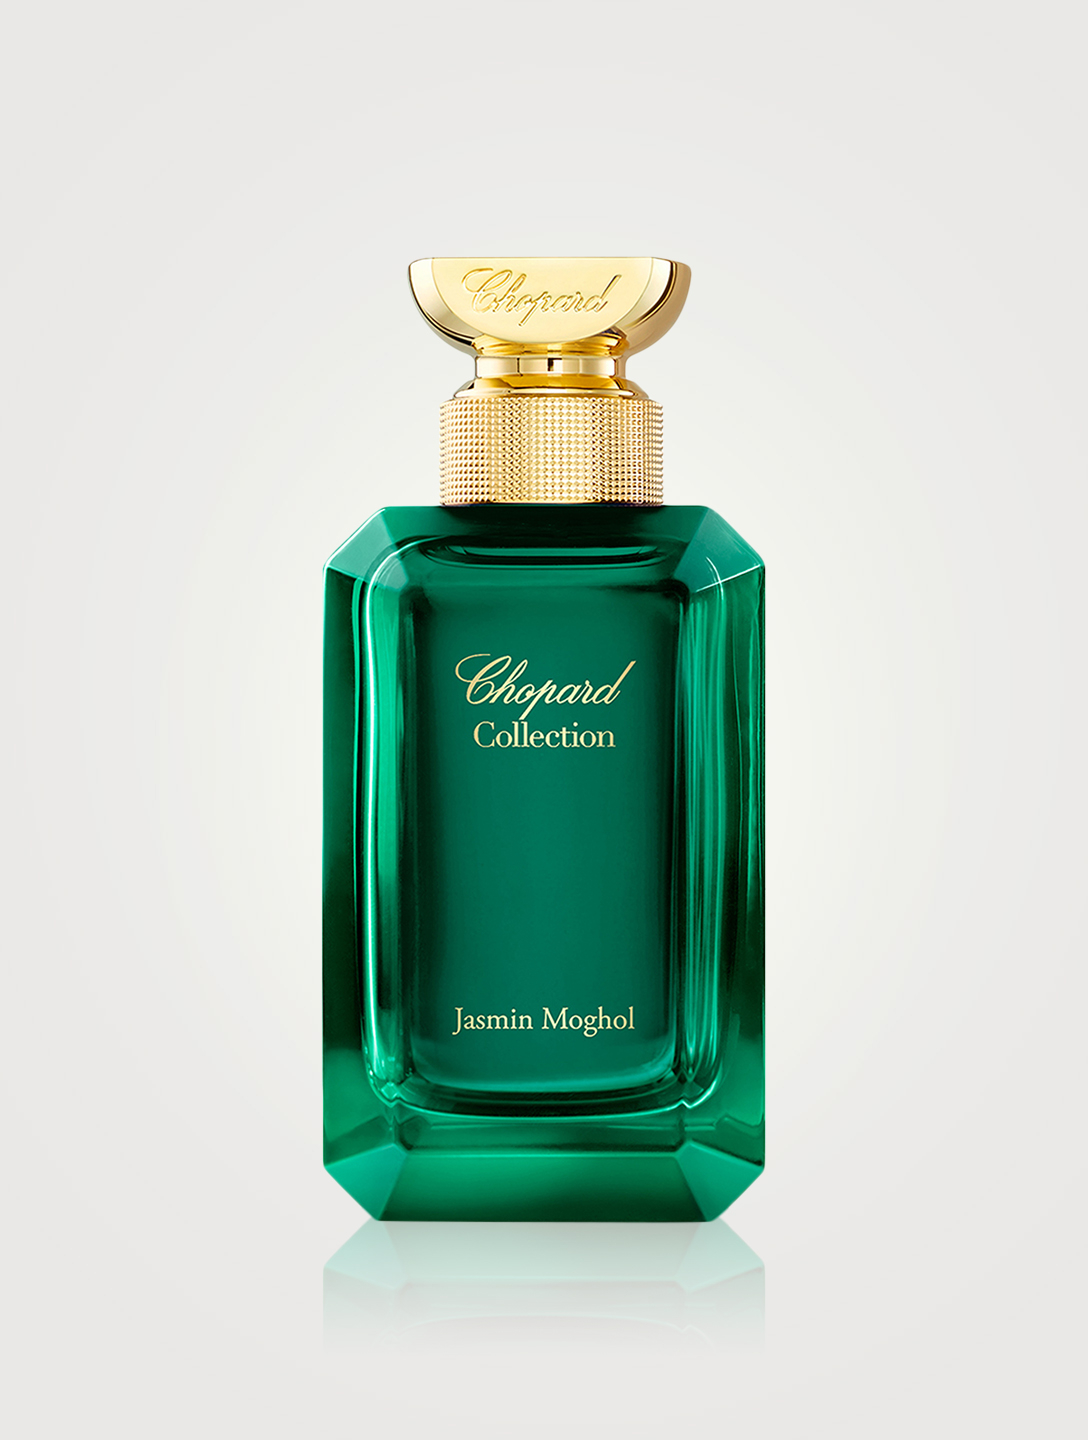 CHOPARD Chopard Collection Jasmin Moghol Beauty